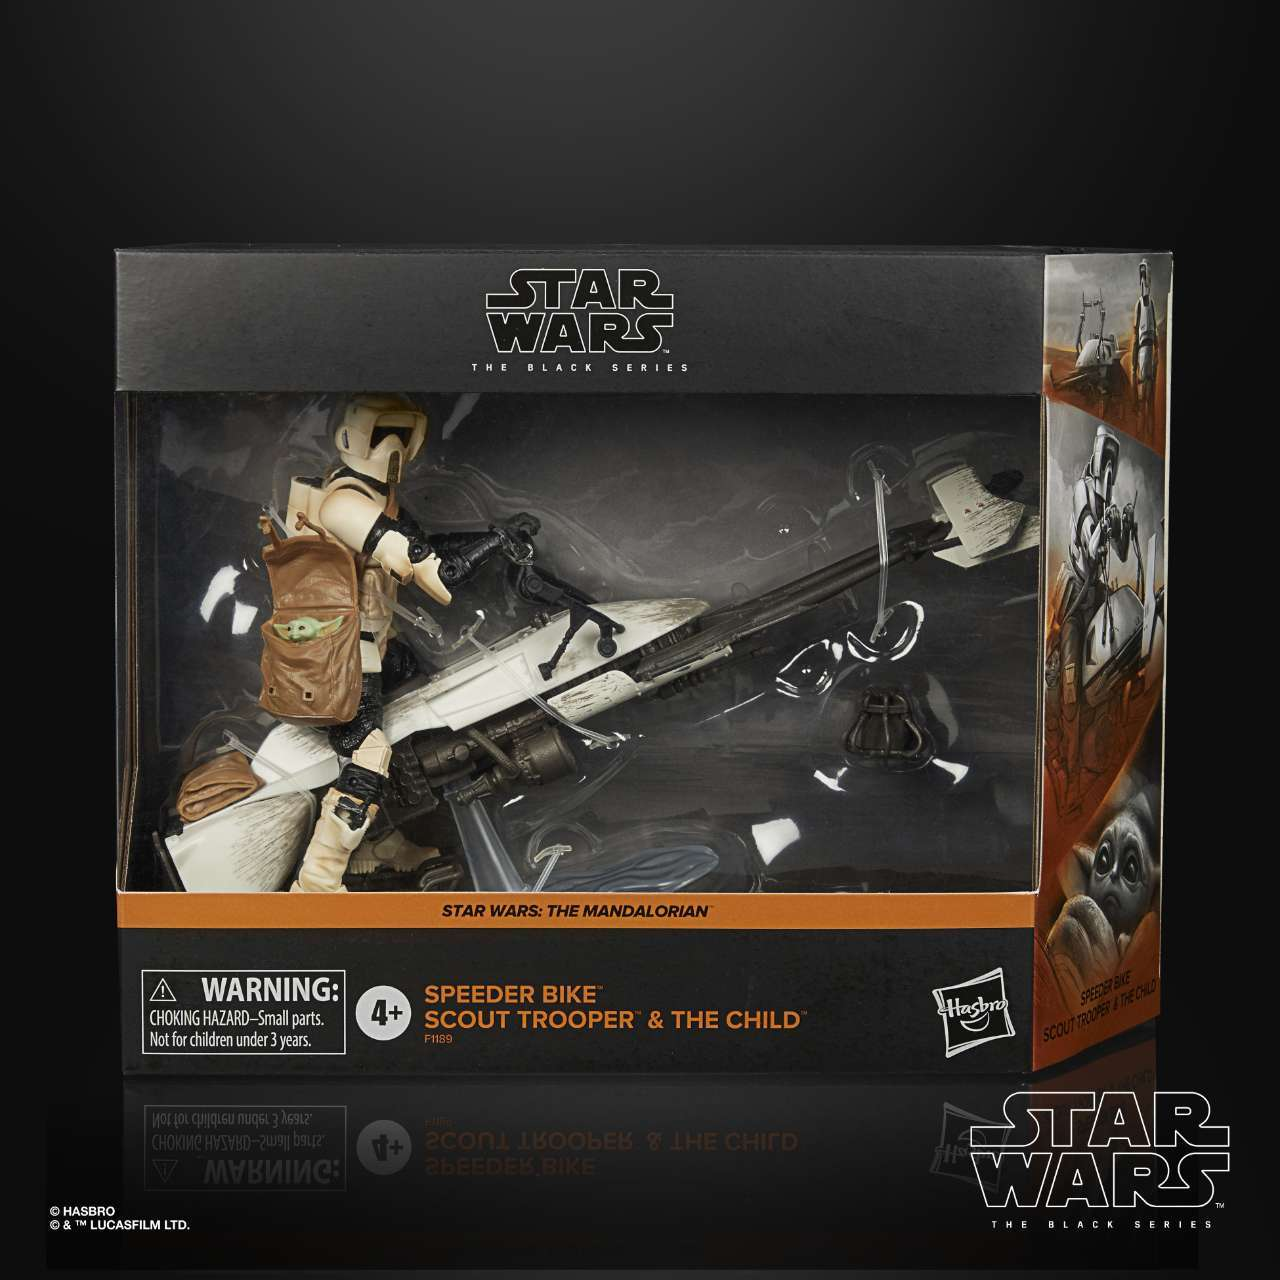 STAR WARS THE BLACK SERIES 6-INCH SPEEDER BIKE SCOUT TROOPER Figure & Vehicle Set - in pck (1)